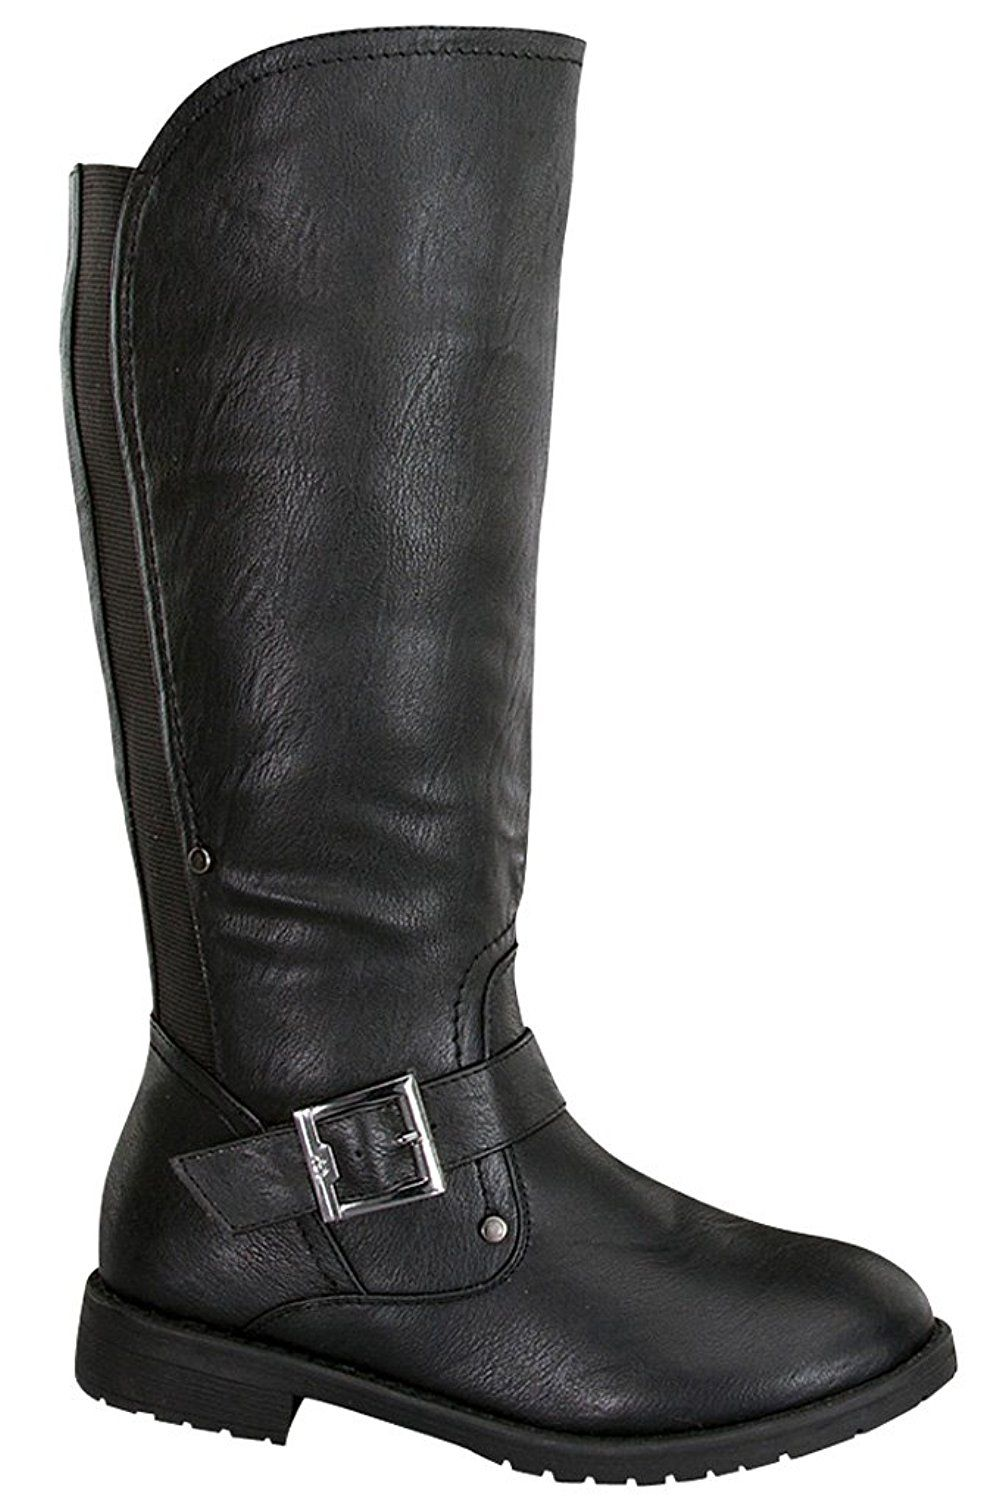 Buckle Side Leather High Casual Strap Top Zipper Faux Boots Guy Knee wOWxp7